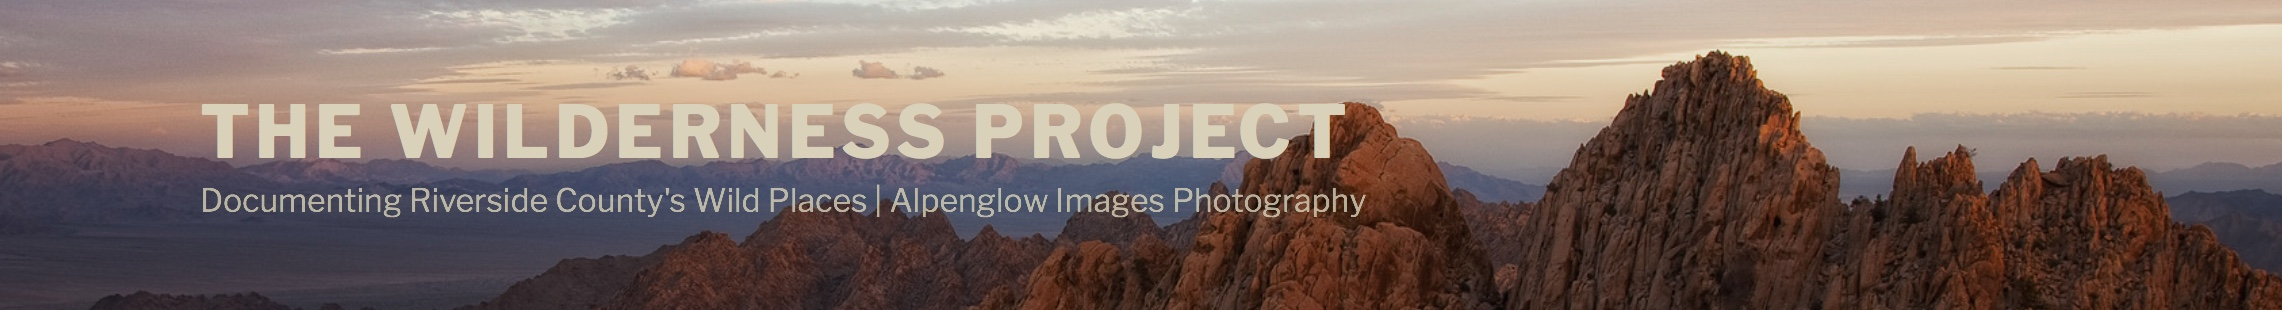 panoramic image with text and colorful mountains at sunset